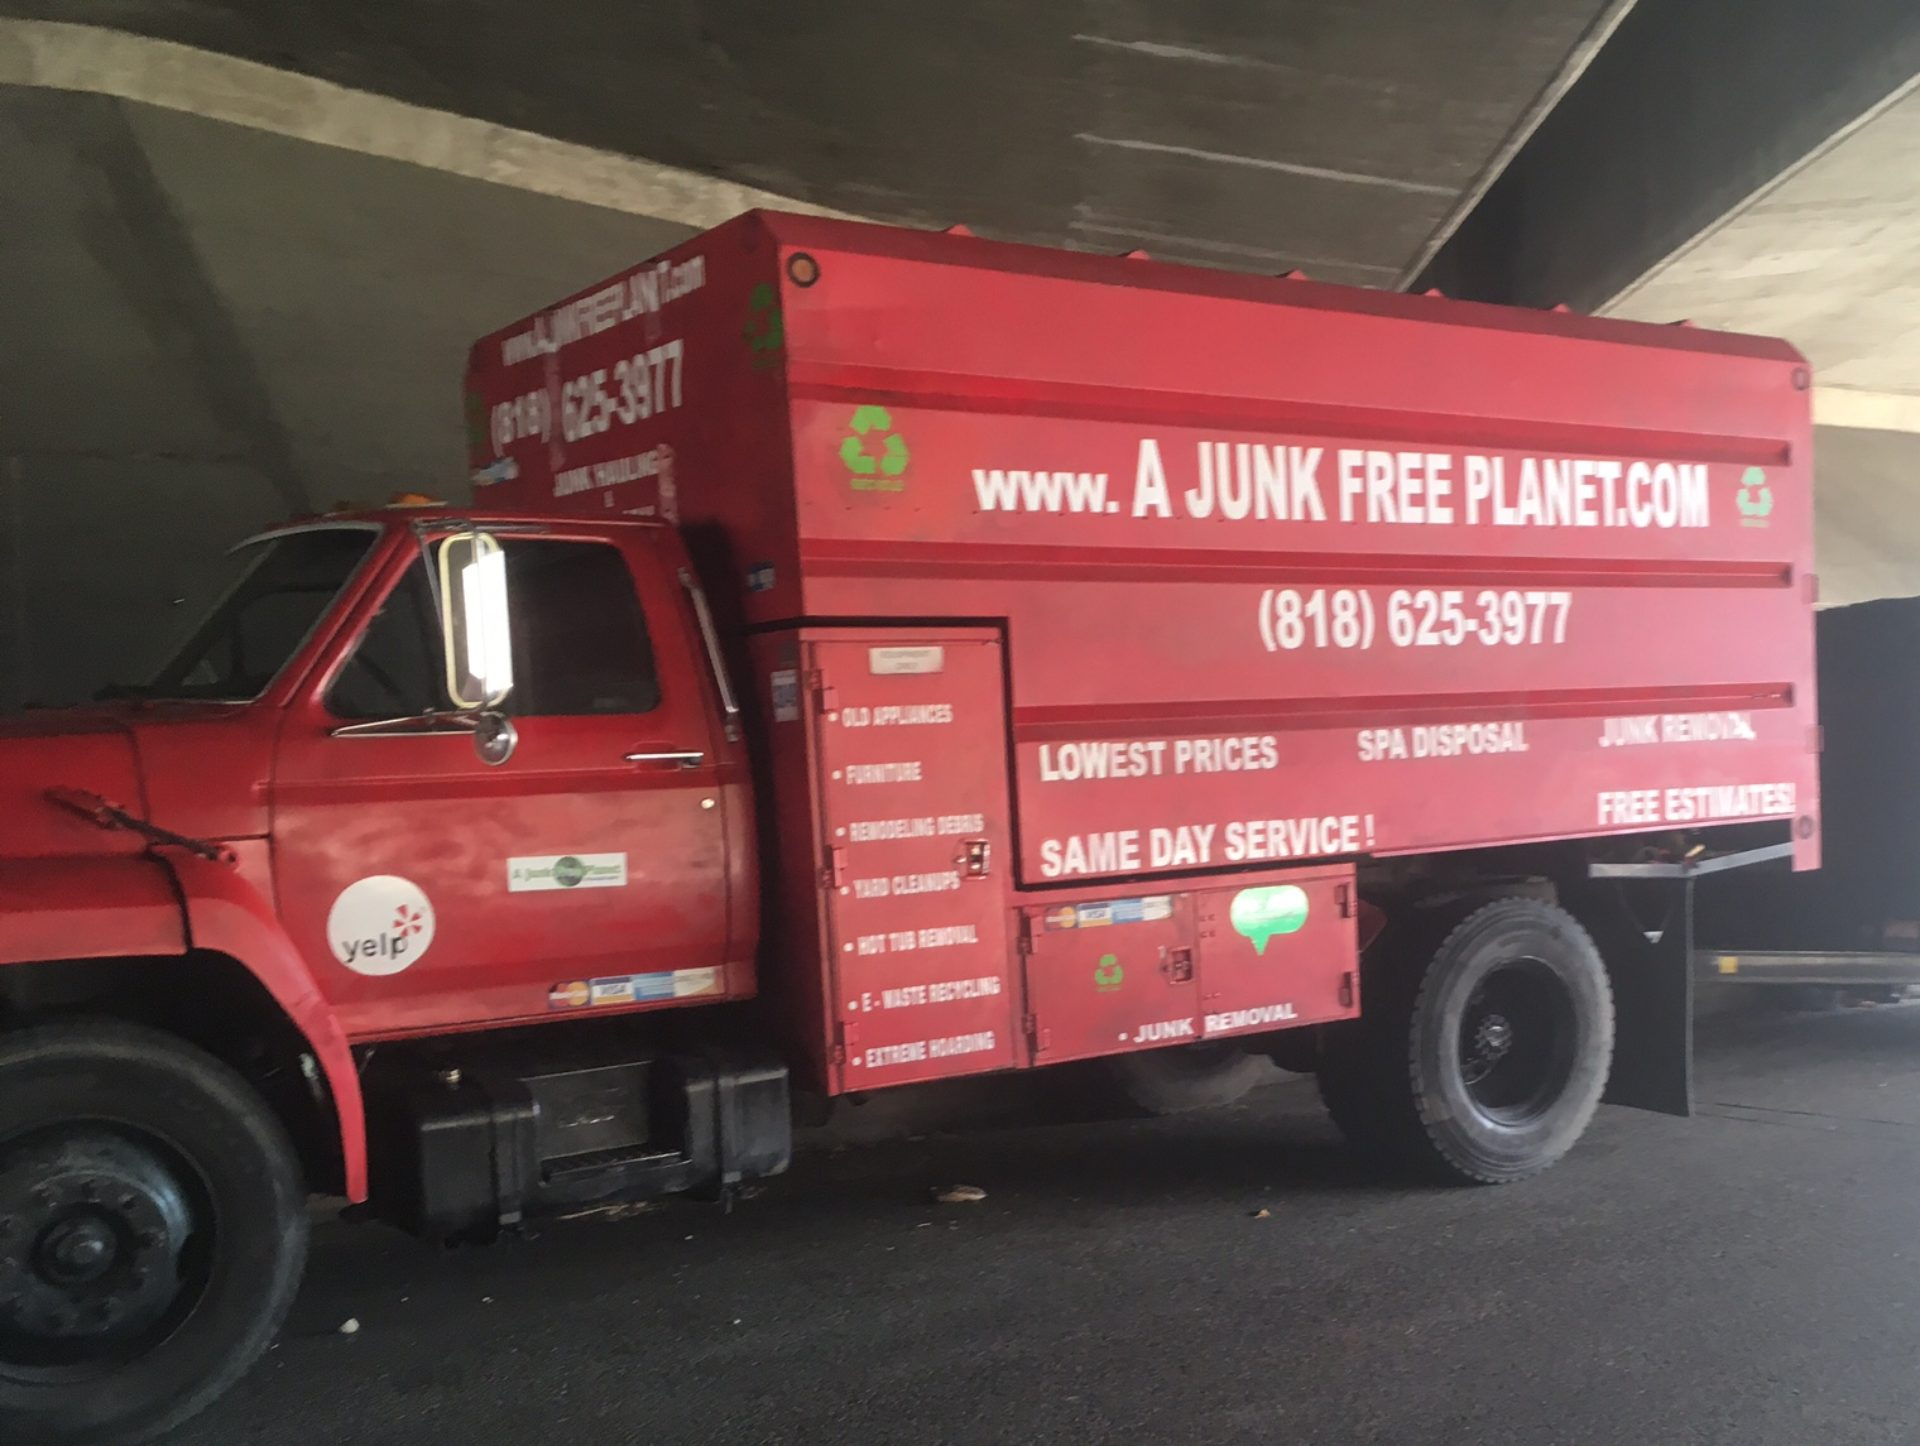 5 Things to look for in a Junk Removal Company | A JUNK FREE PLANET ...